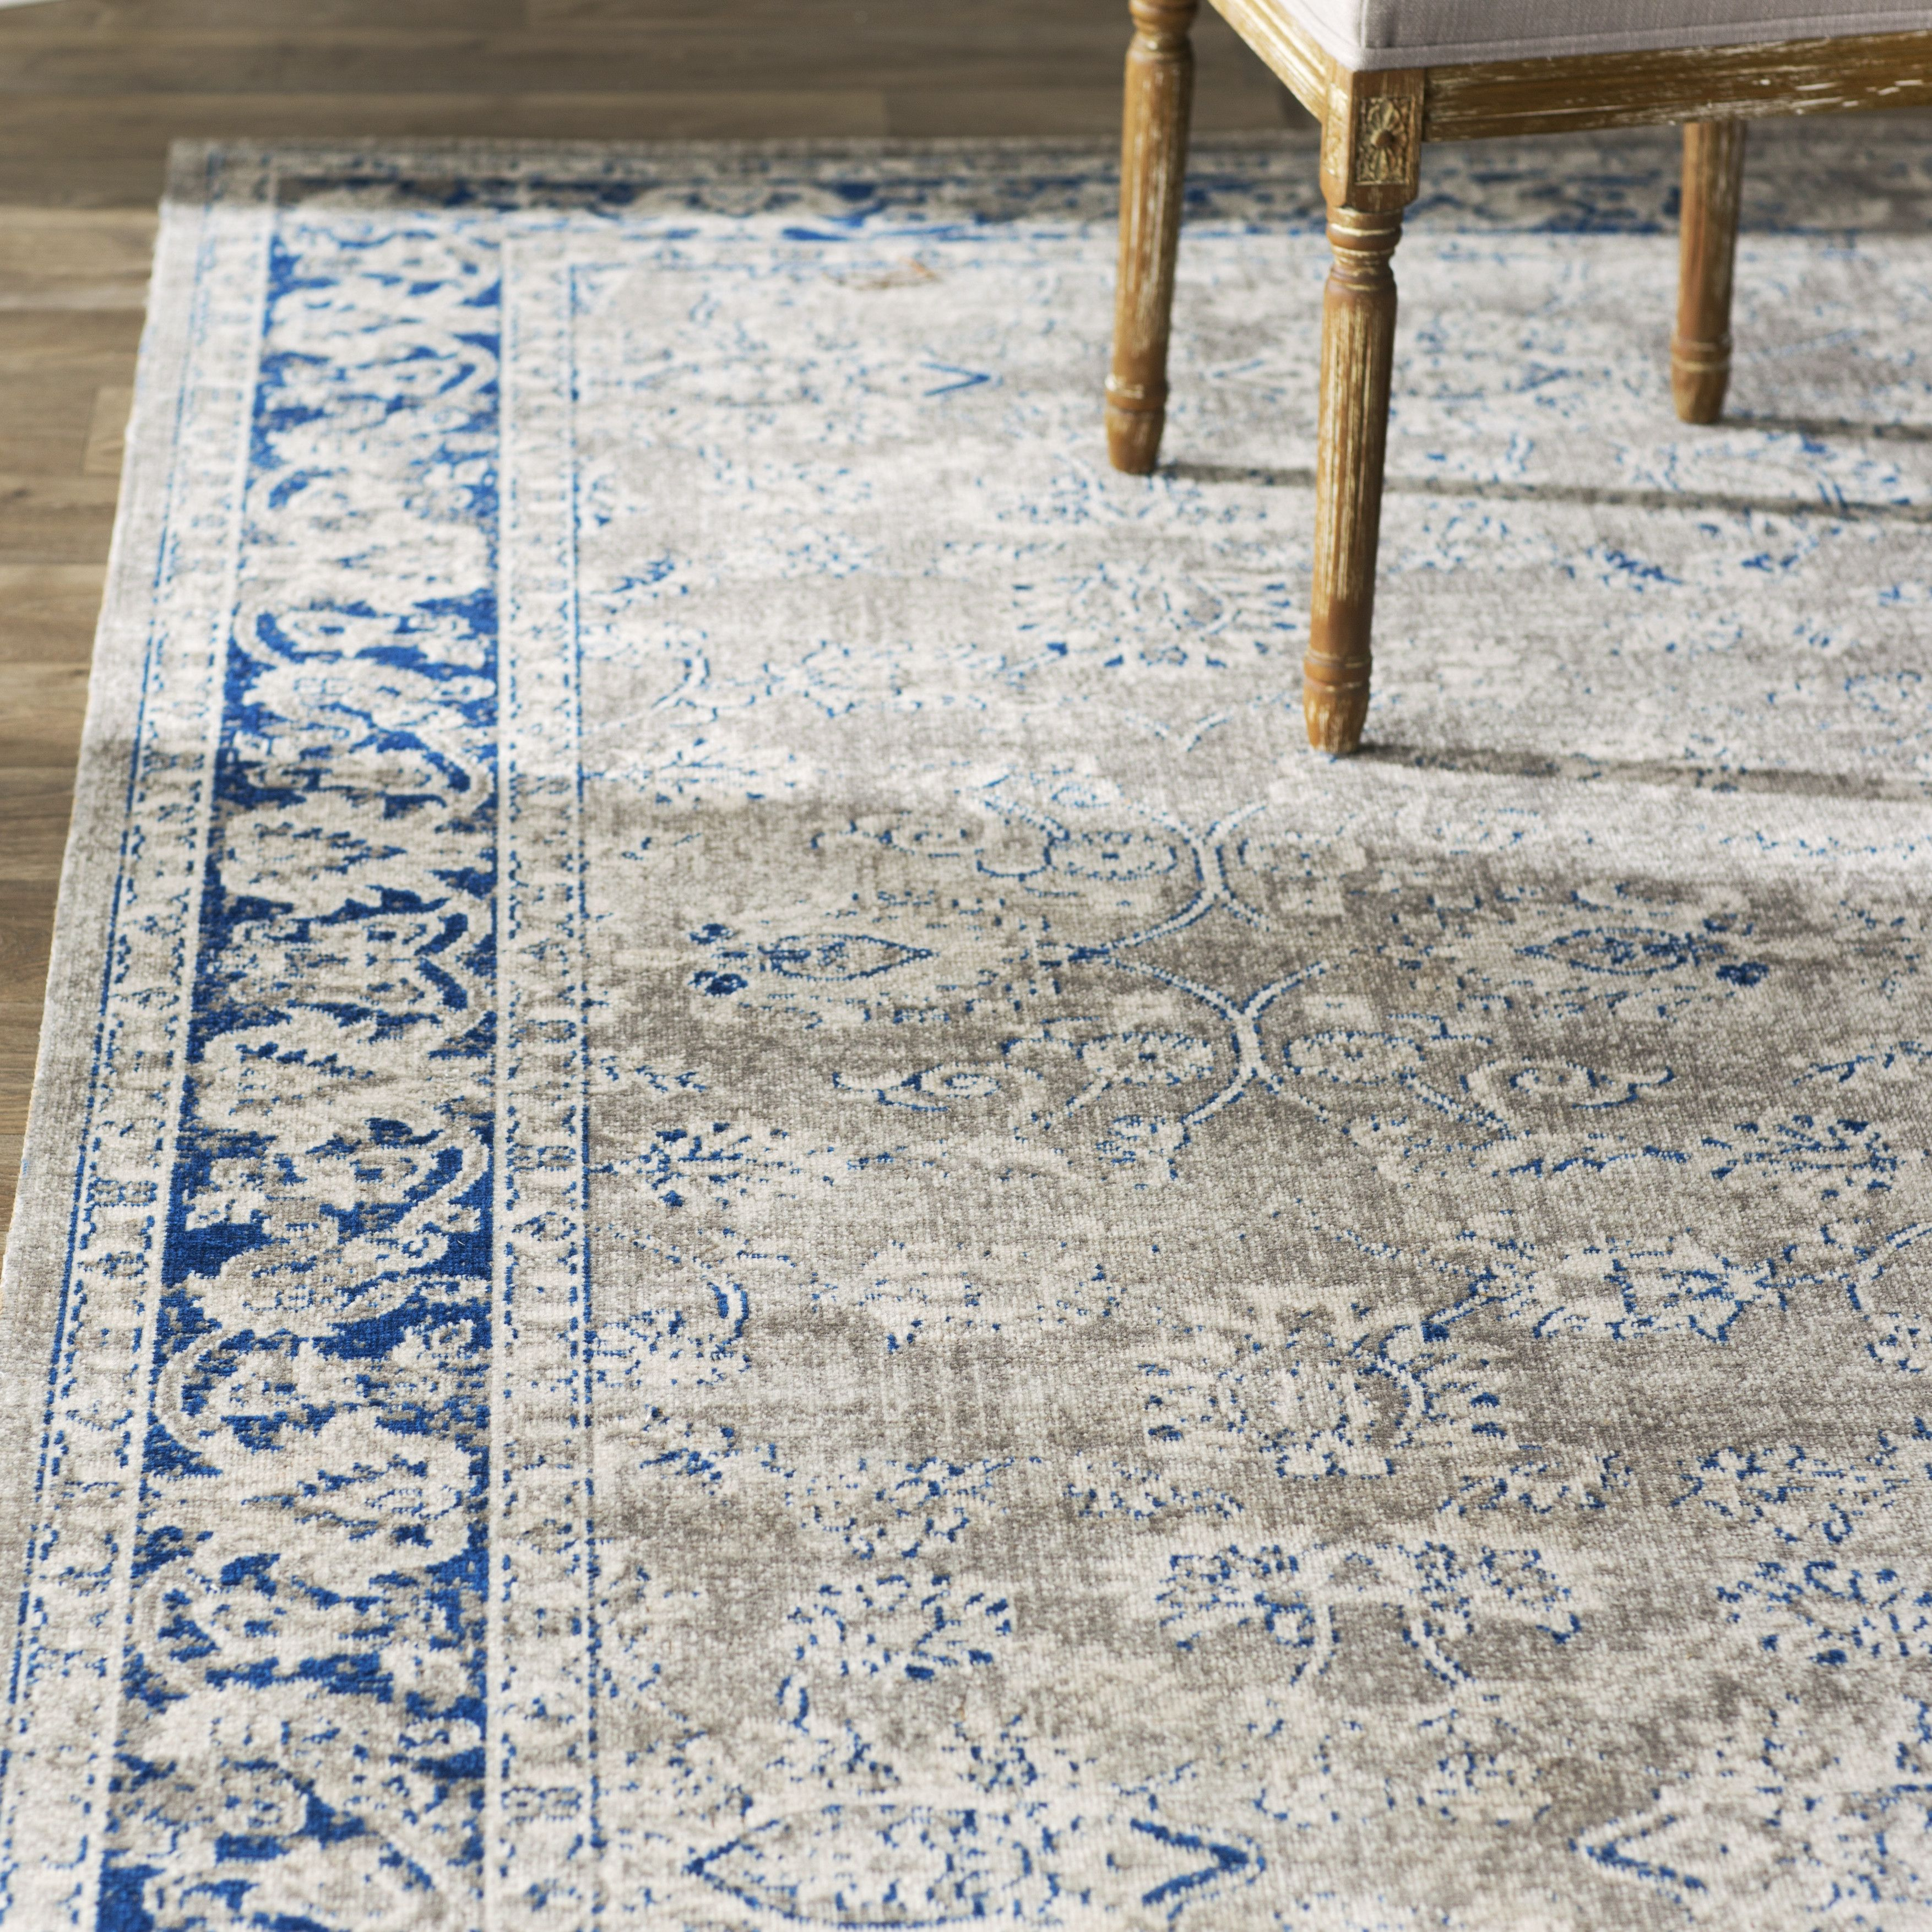 Shop Wayfair For Area Rugs To Match Every Style And Budget Enjoy Free Shipping Blue